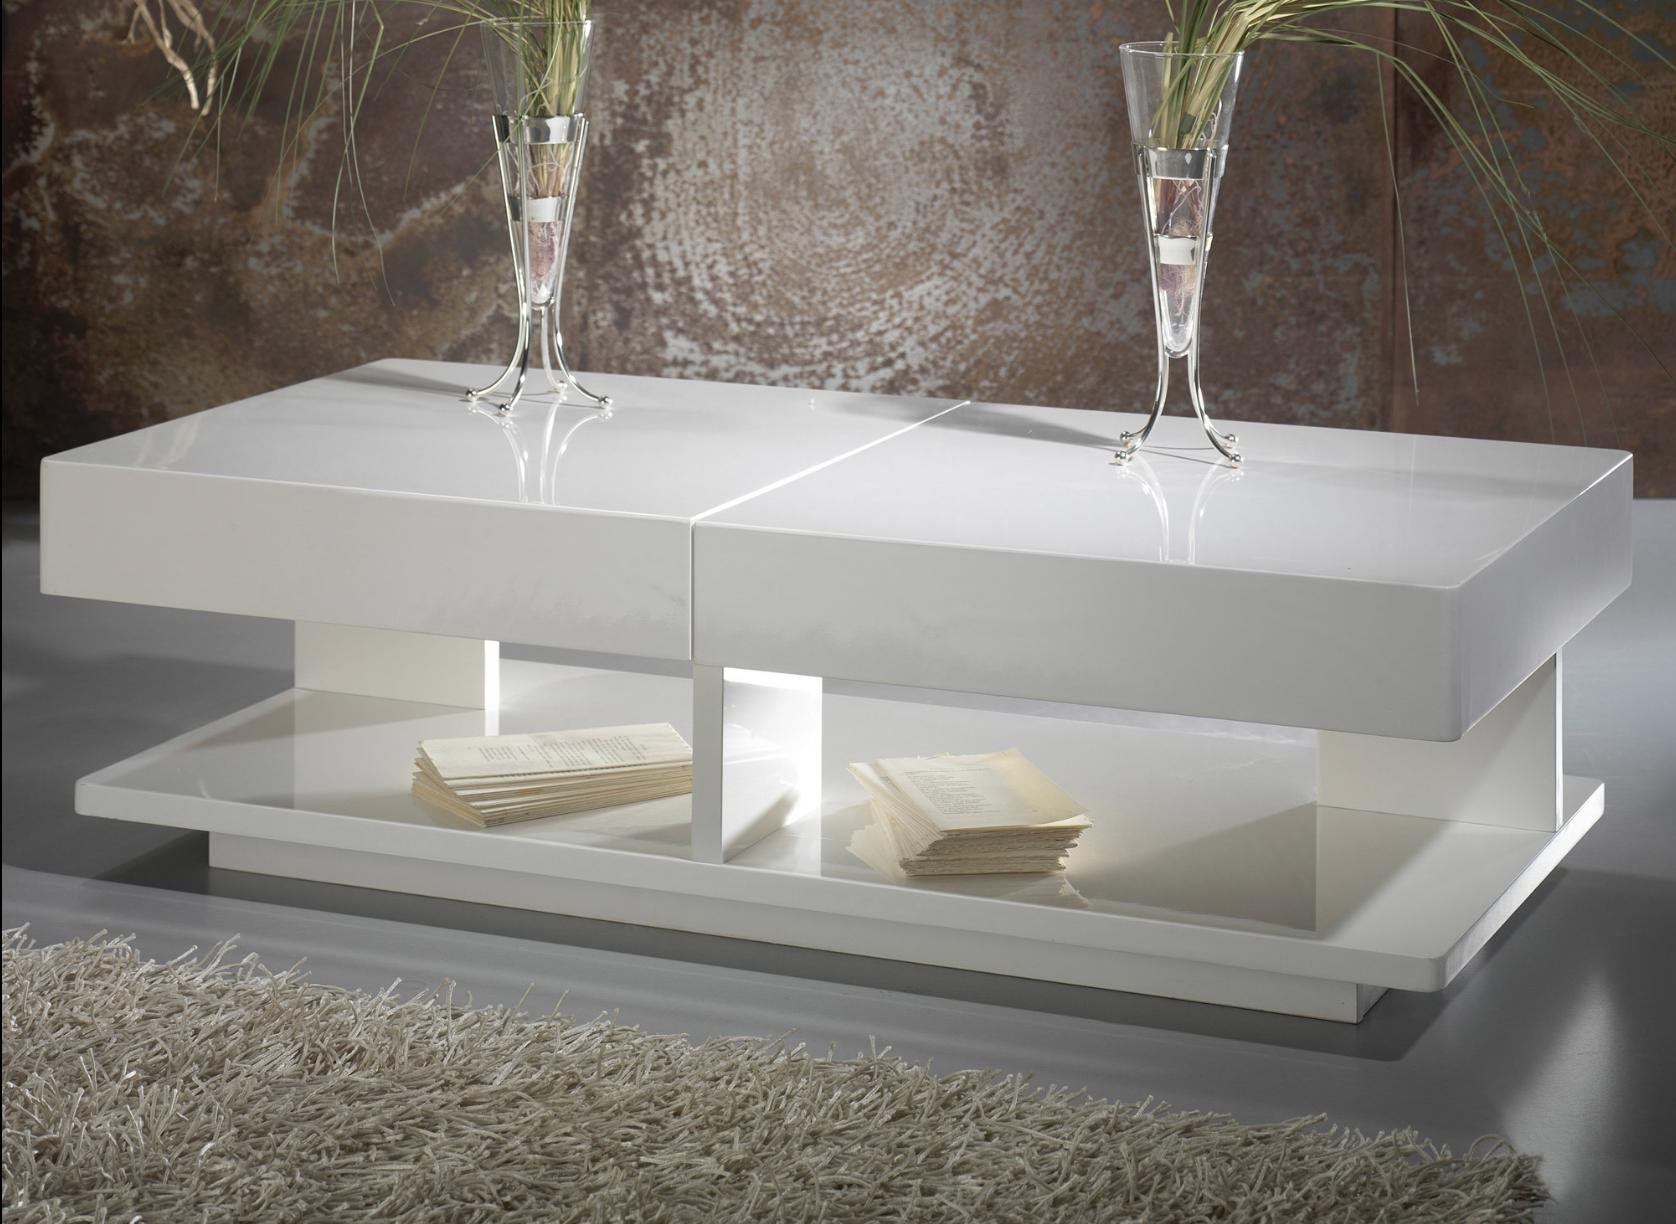 table basse avec plateau coulissant laqu blanc galaxa. Black Bedroom Furniture Sets. Home Design Ideas